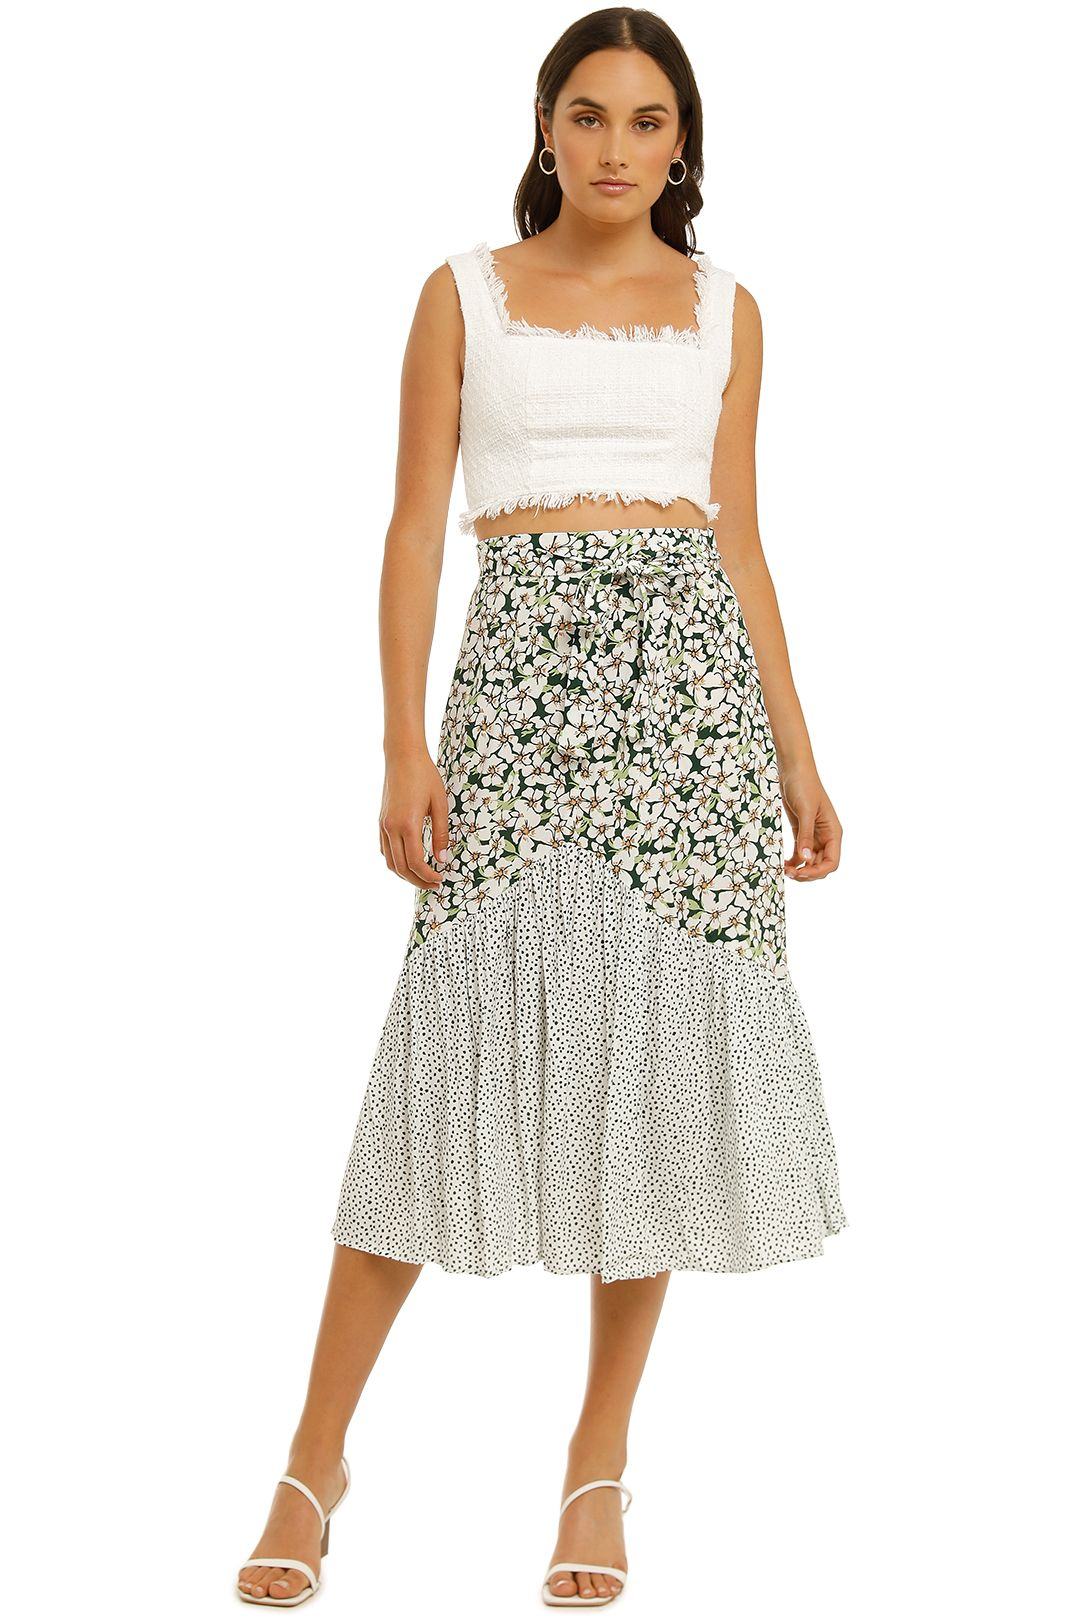 Rue-Stiic-Sheffield-Skirt-Emerald-Posy-Floral-Confetti-Mix-Front